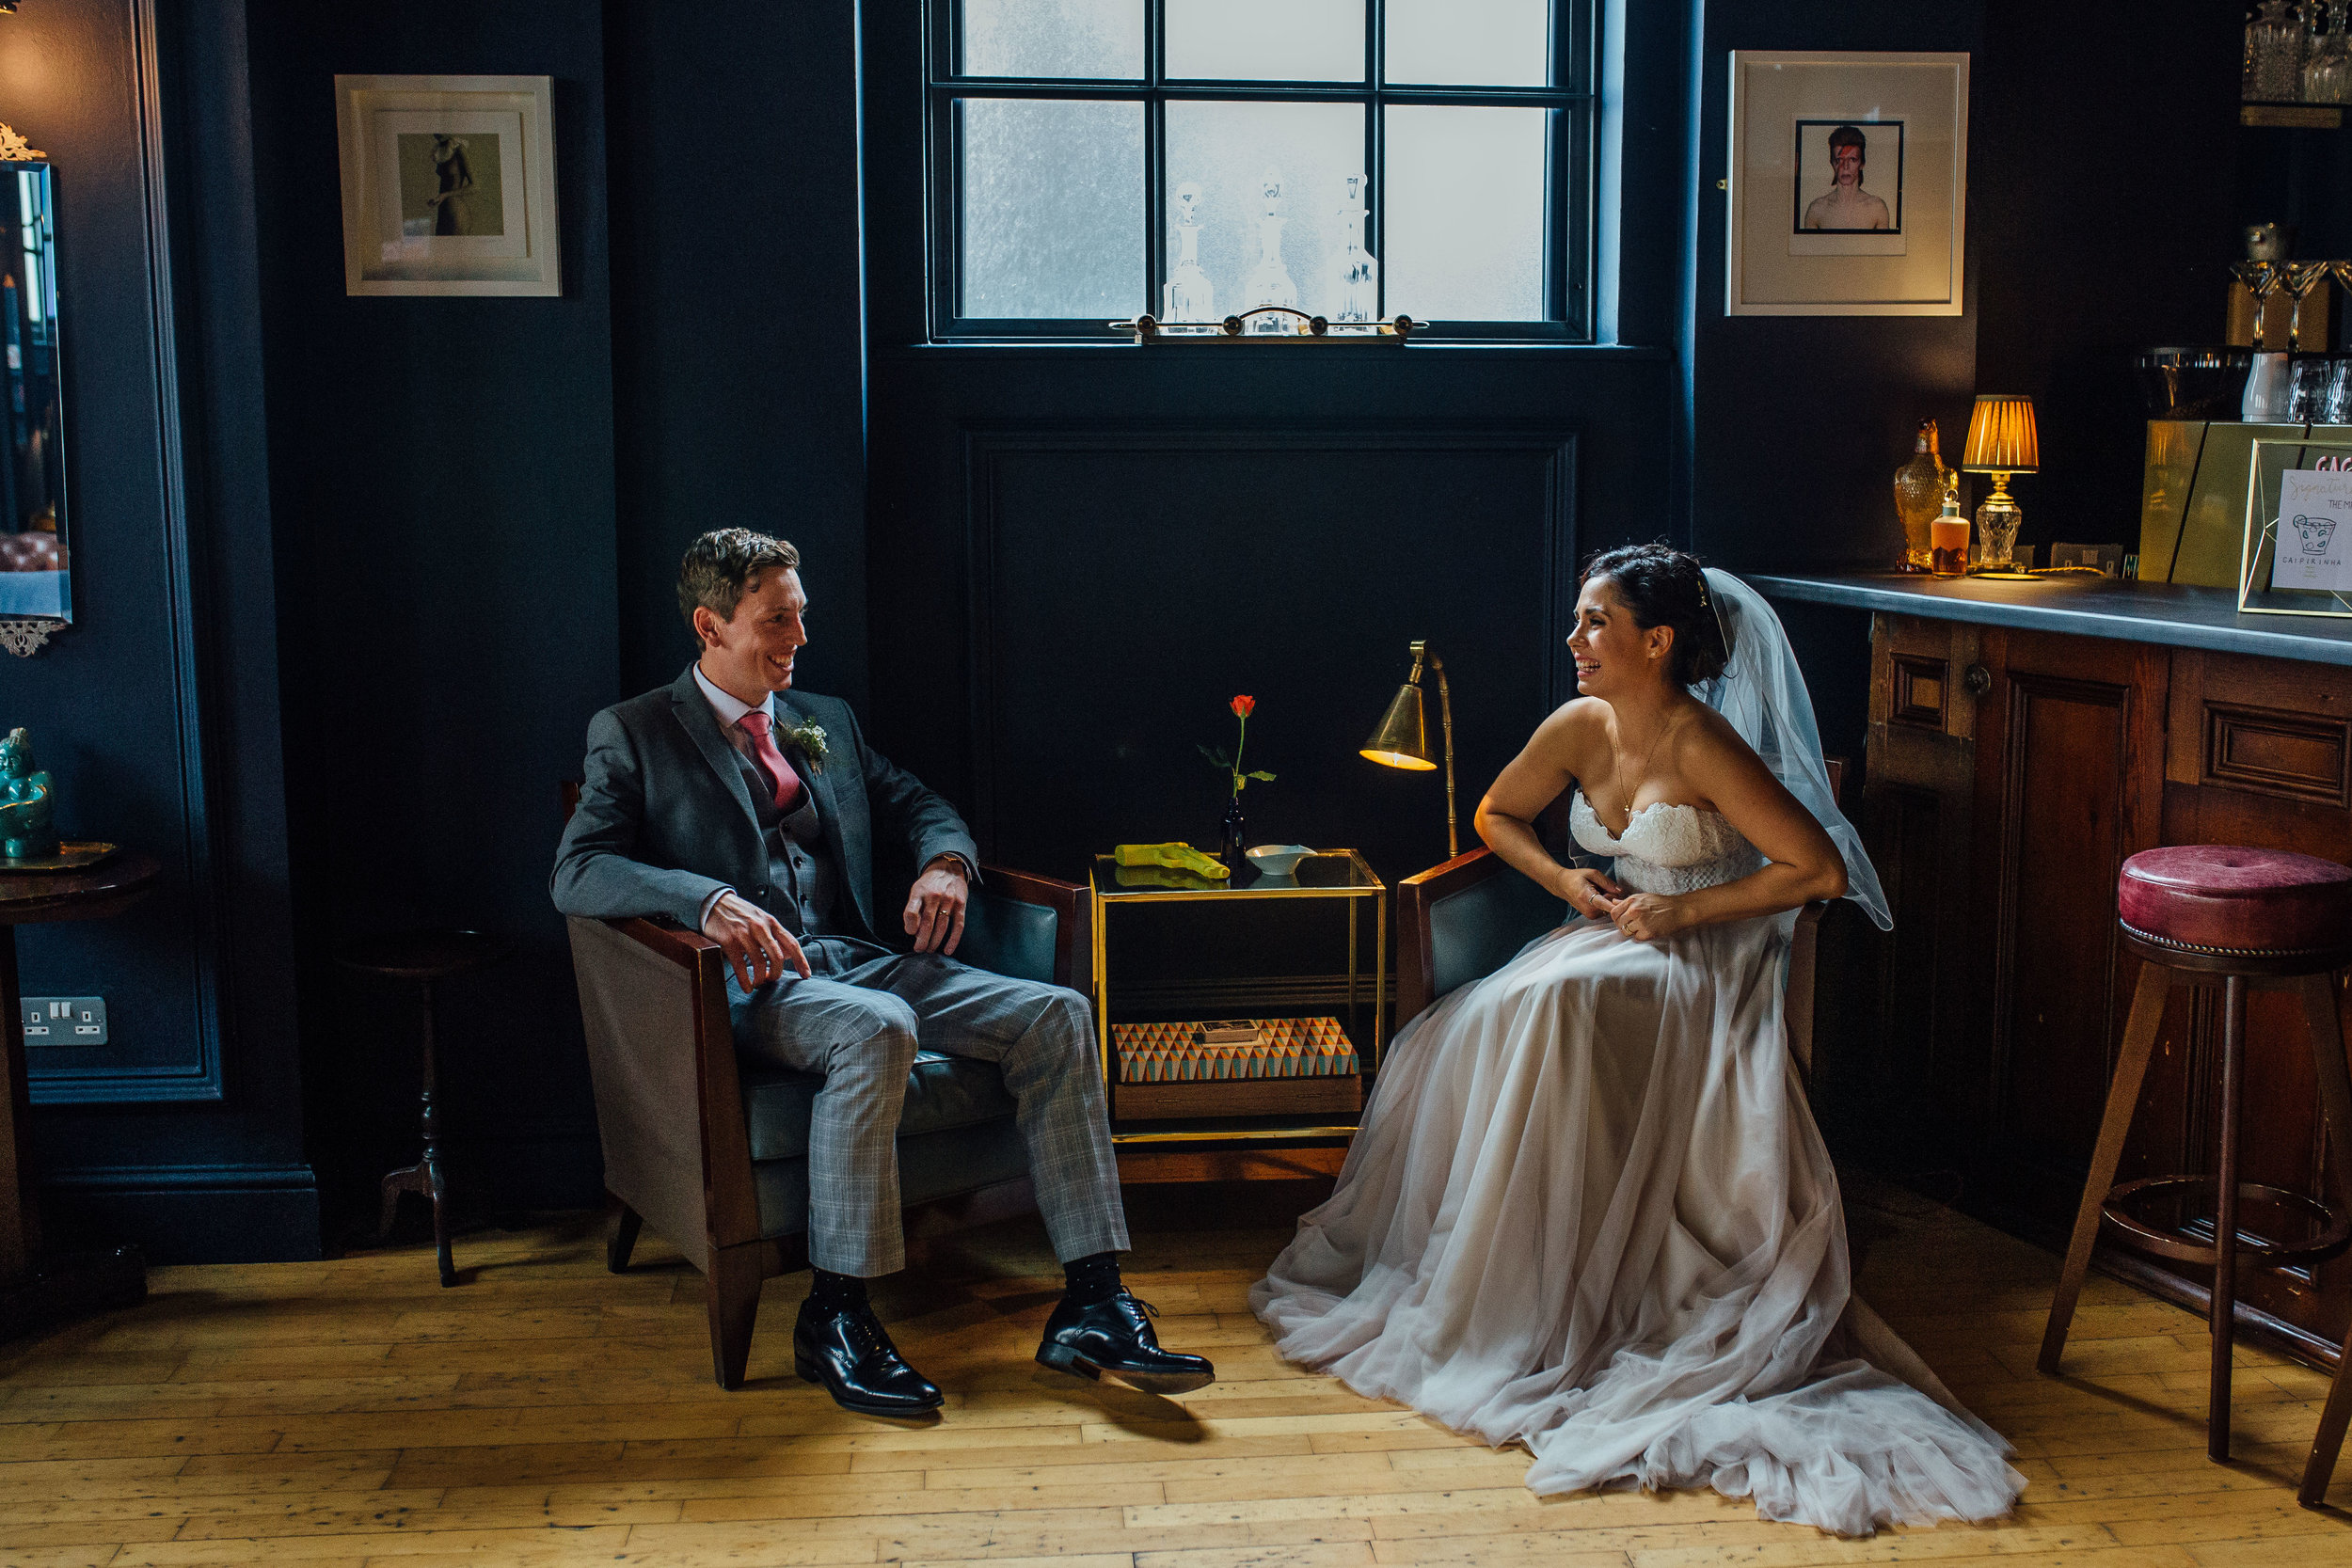 Sheffield Yorkshire Documentary Wedding Photographer Fivefourstudios Manchester